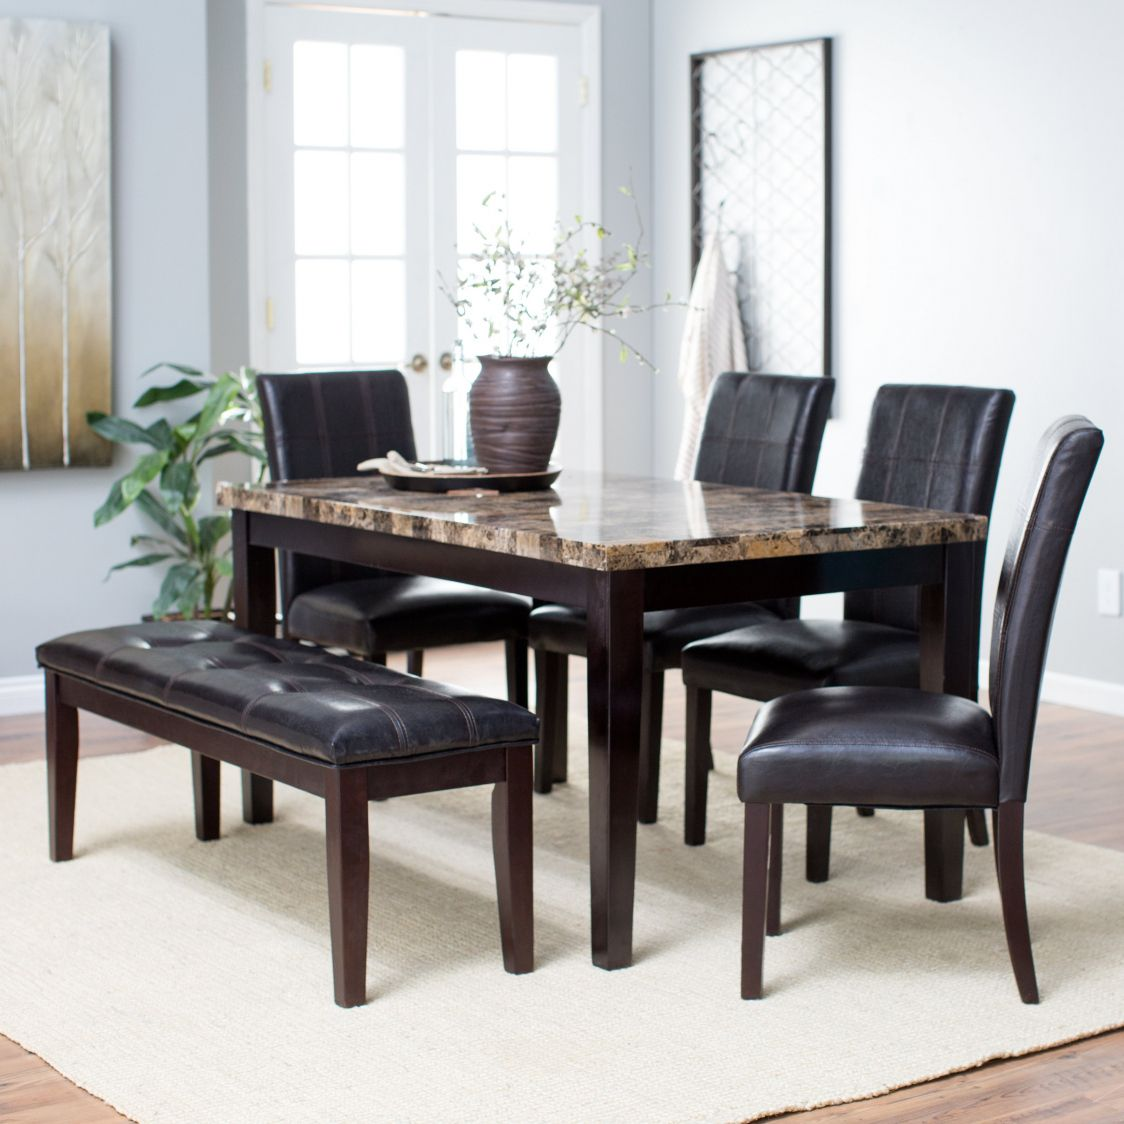 Cheap Dining Room Tables For Sale  Cool Furniture Ideas Check Alluring Dining Room Tables For Sale Cheap Design Inspiration